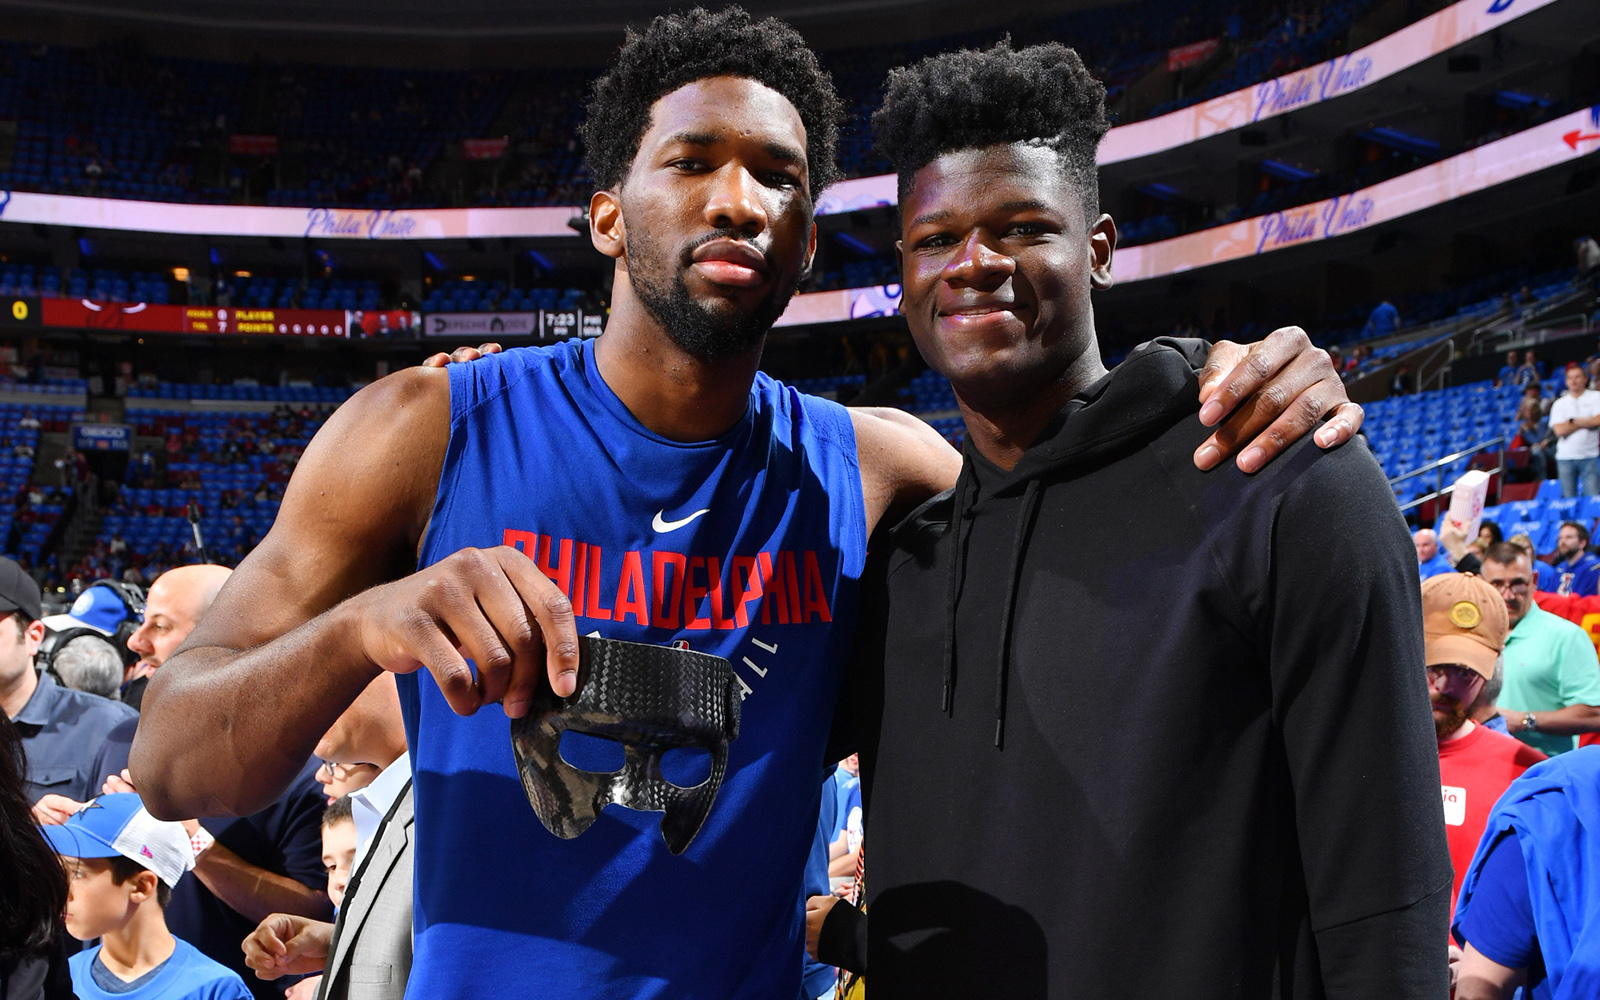 Joel Embiid and Mo Bamba